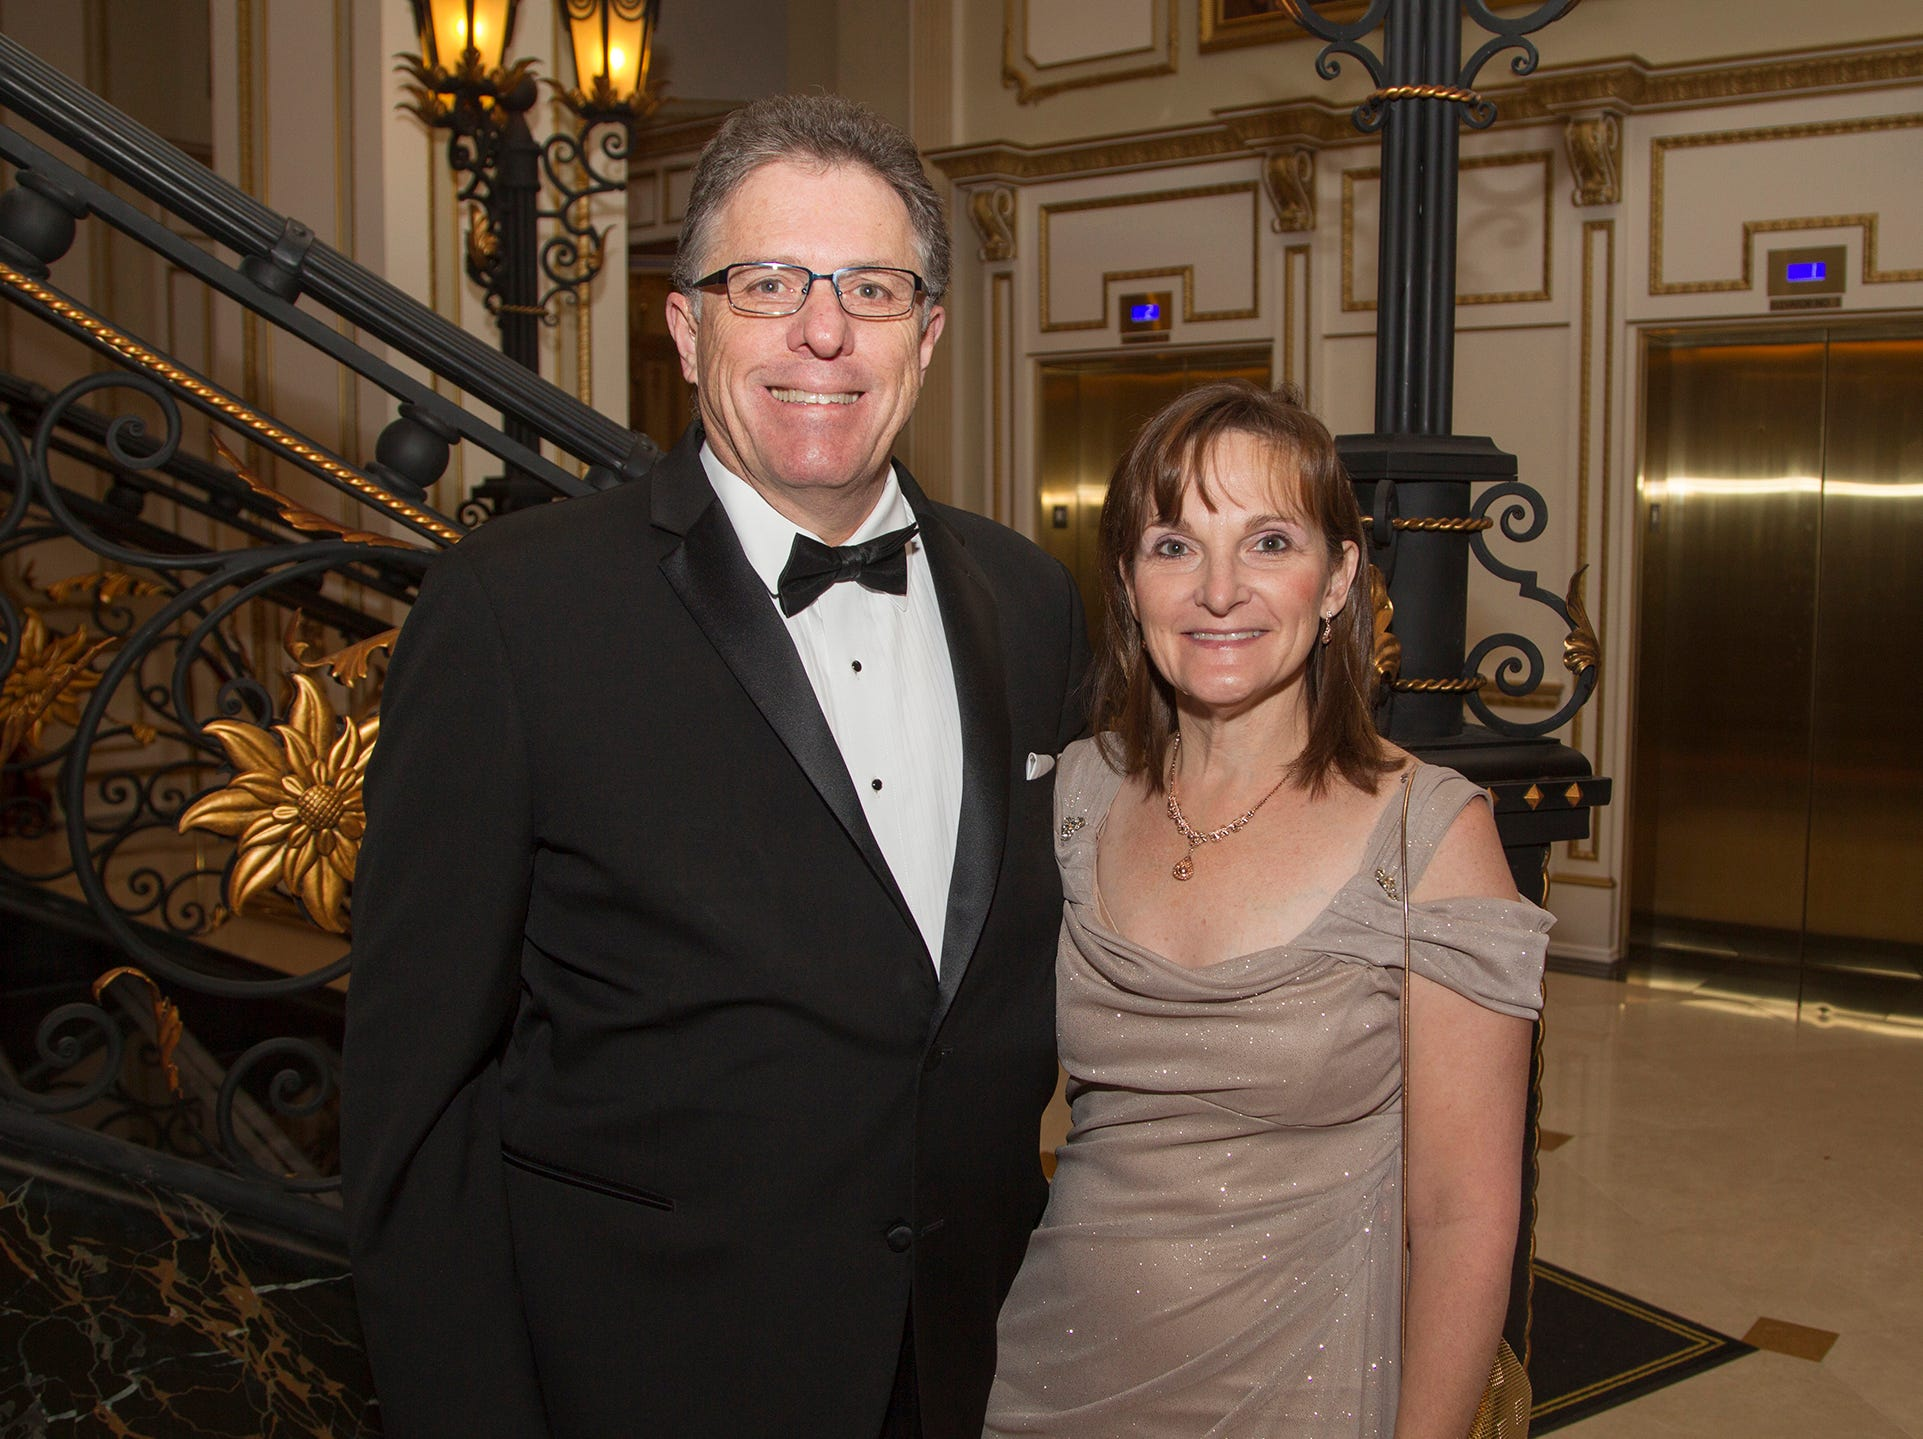 Ken and Holly Madara. The 72nd Annual Valley Ball gala at The Legacy Castle in Pompton Plains. 11/16/2018